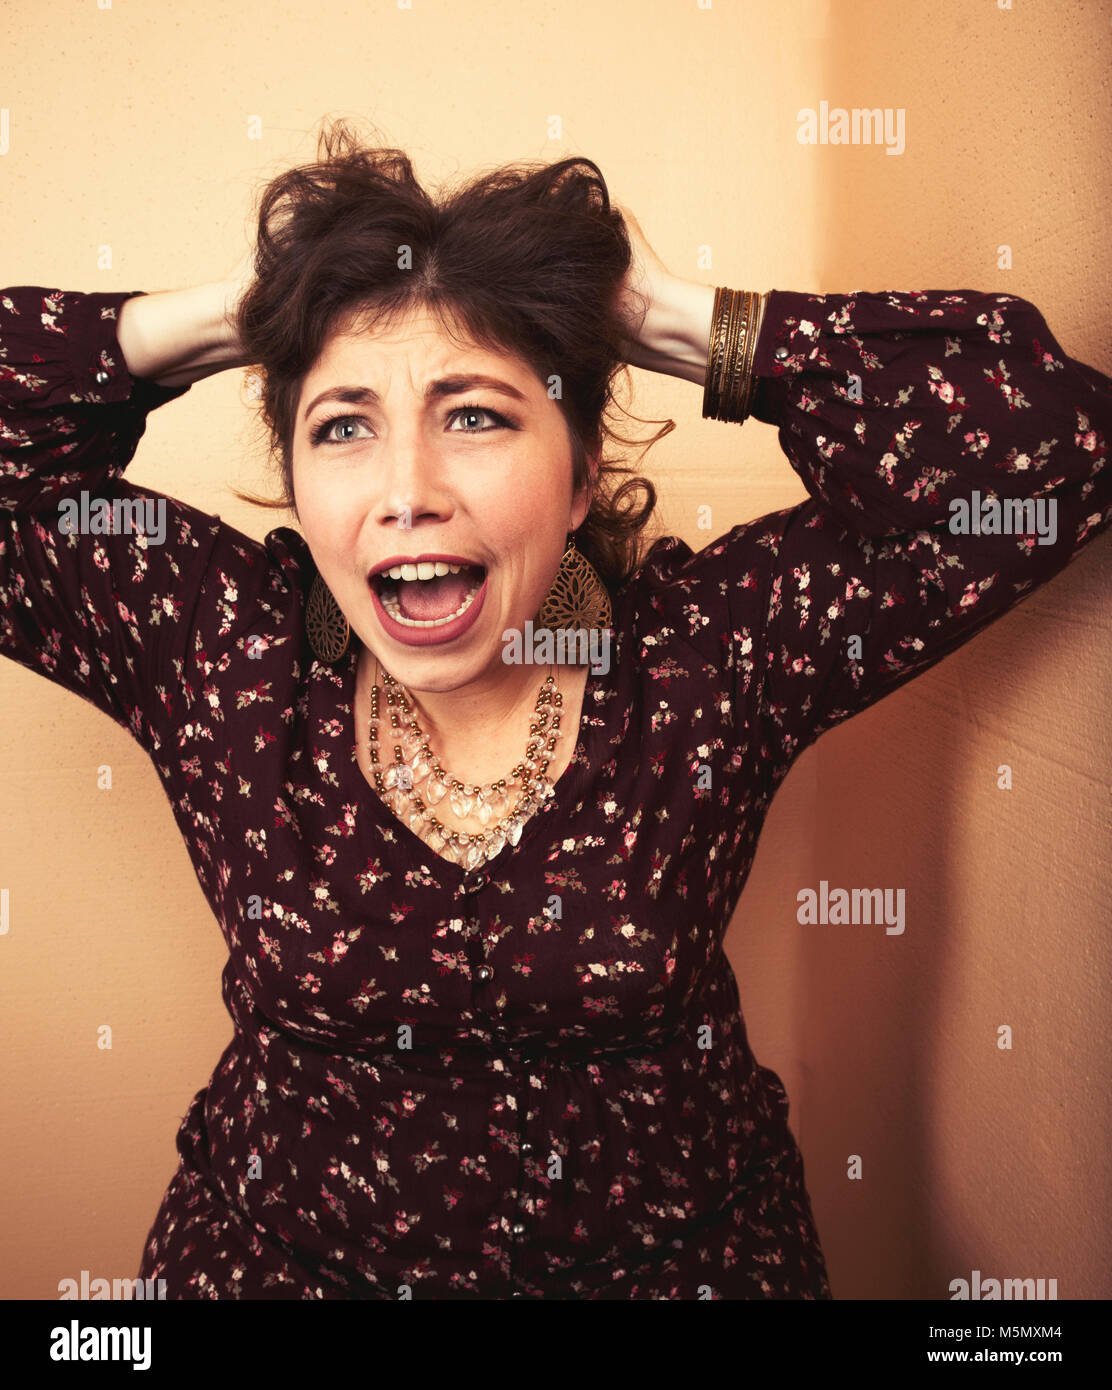 Woman pulling her hair and screaming. - Stock Image